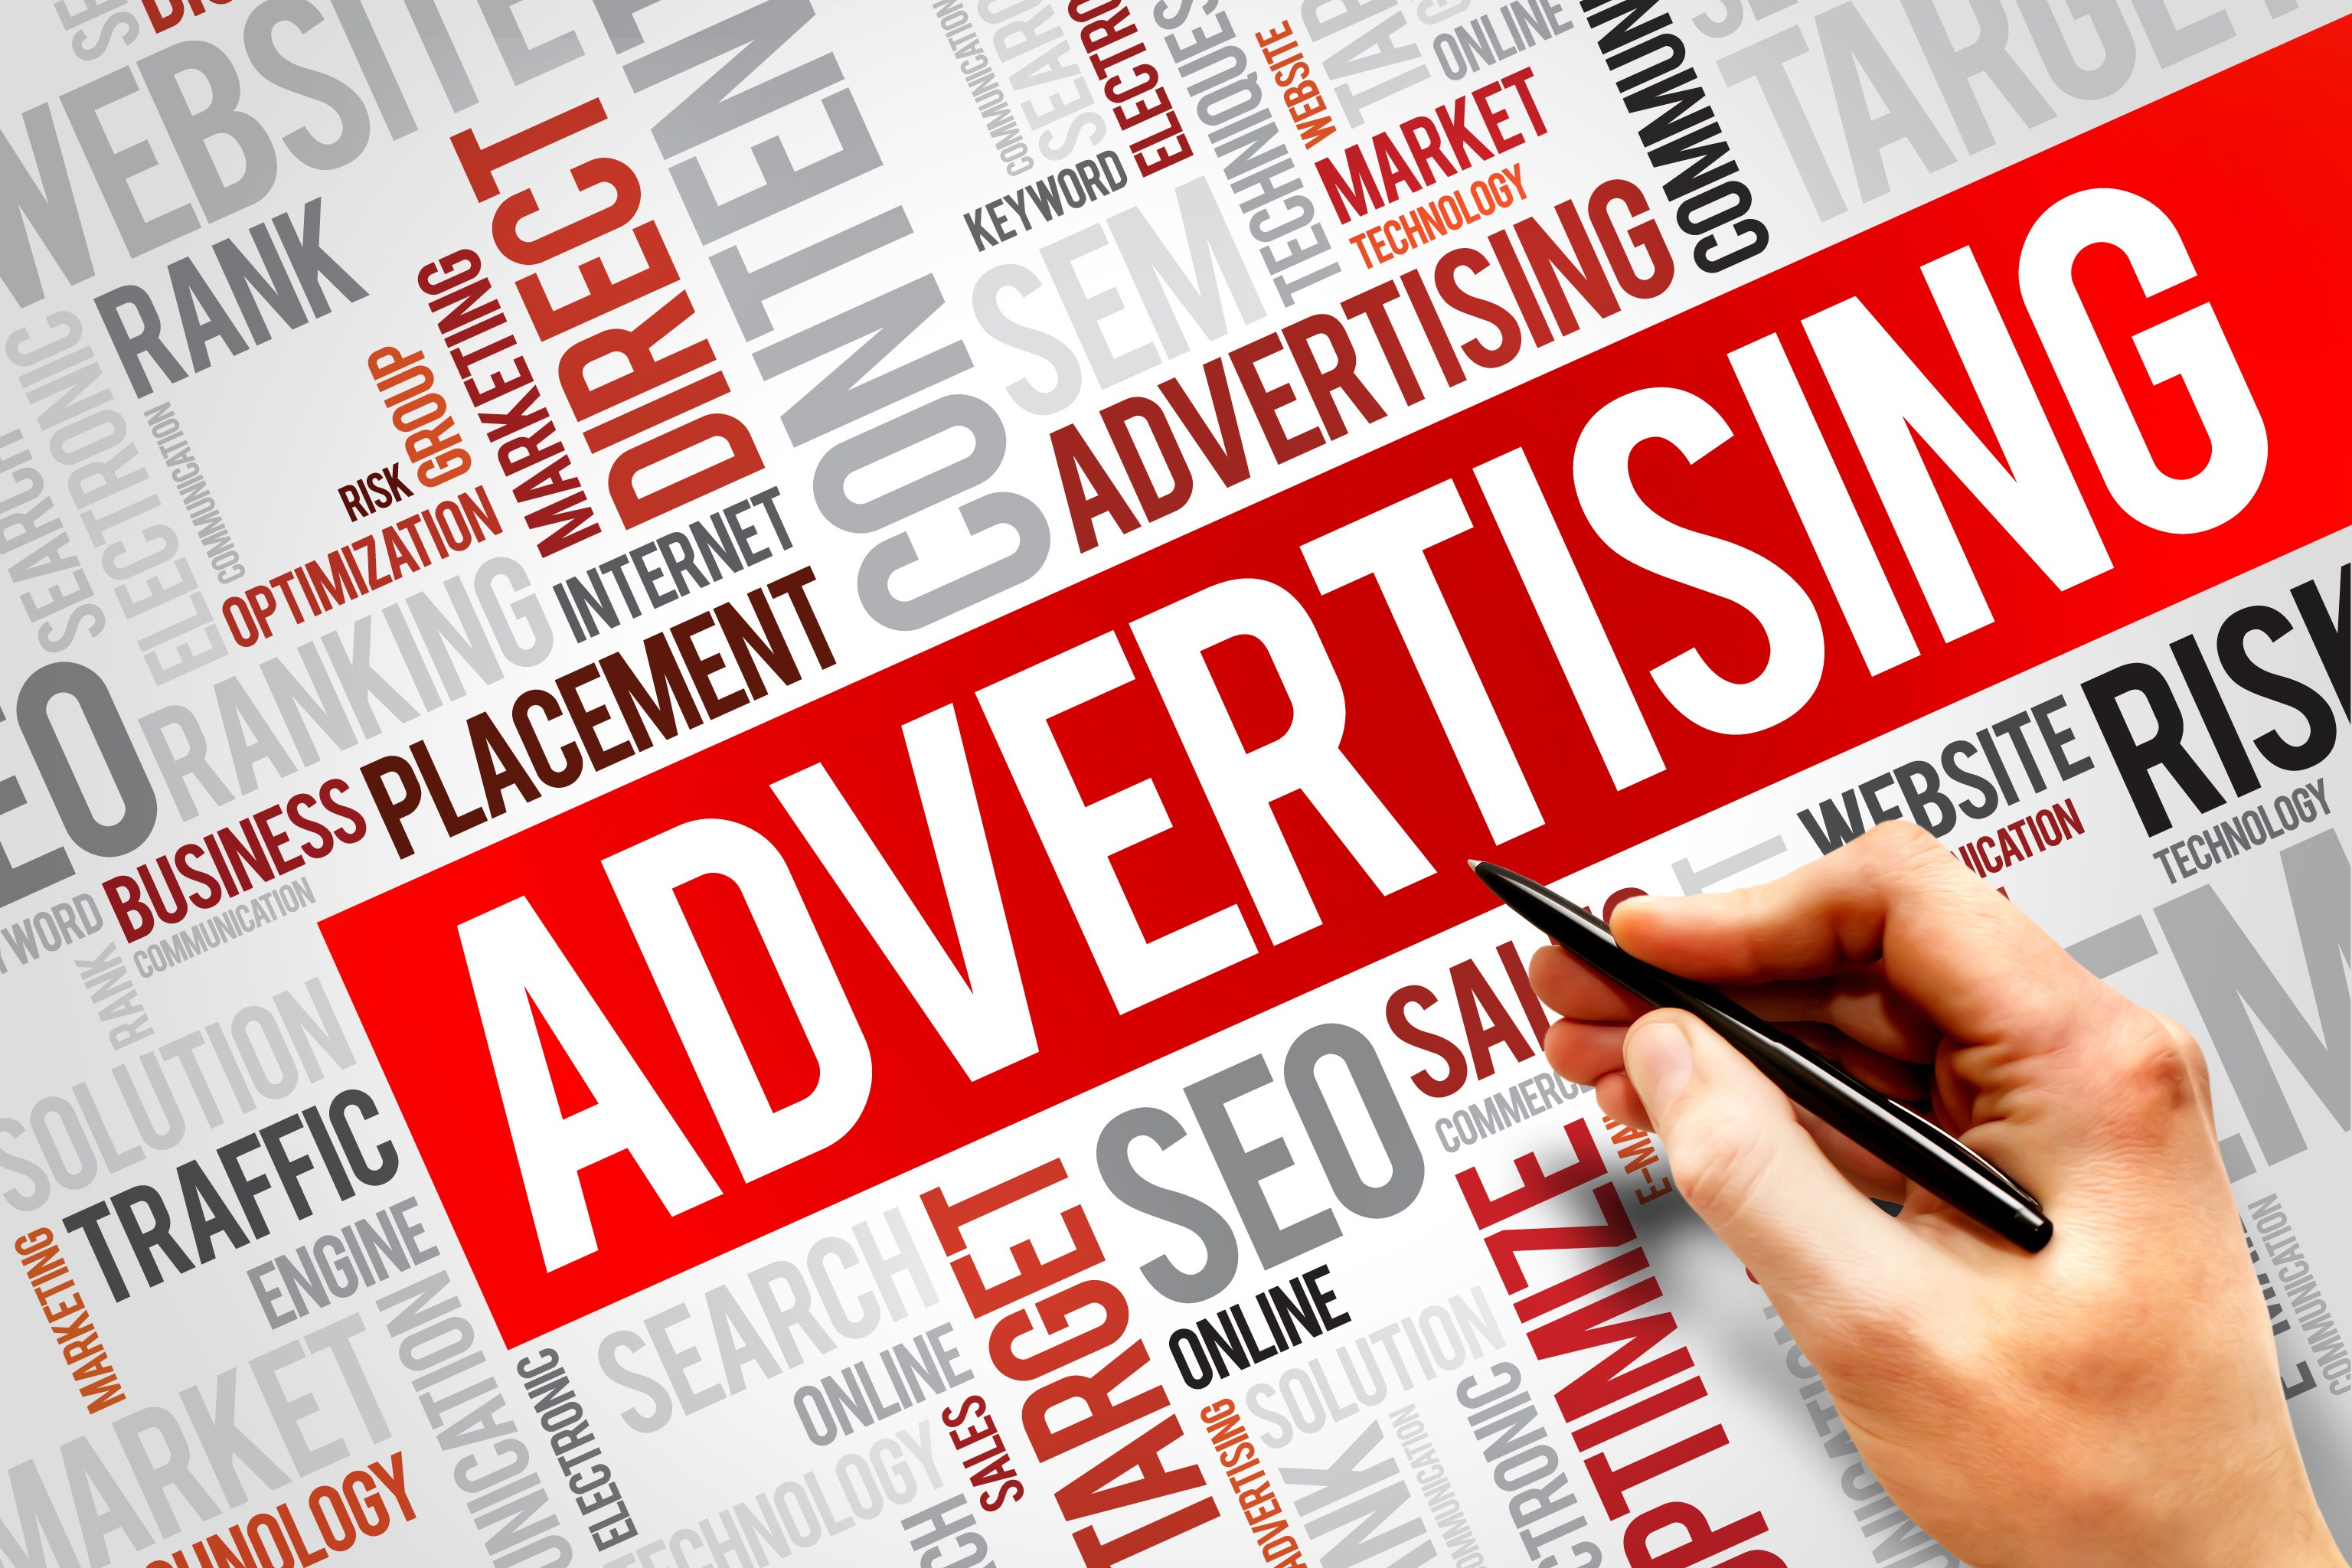 Use The Advertising Platform to Promote Business Locally